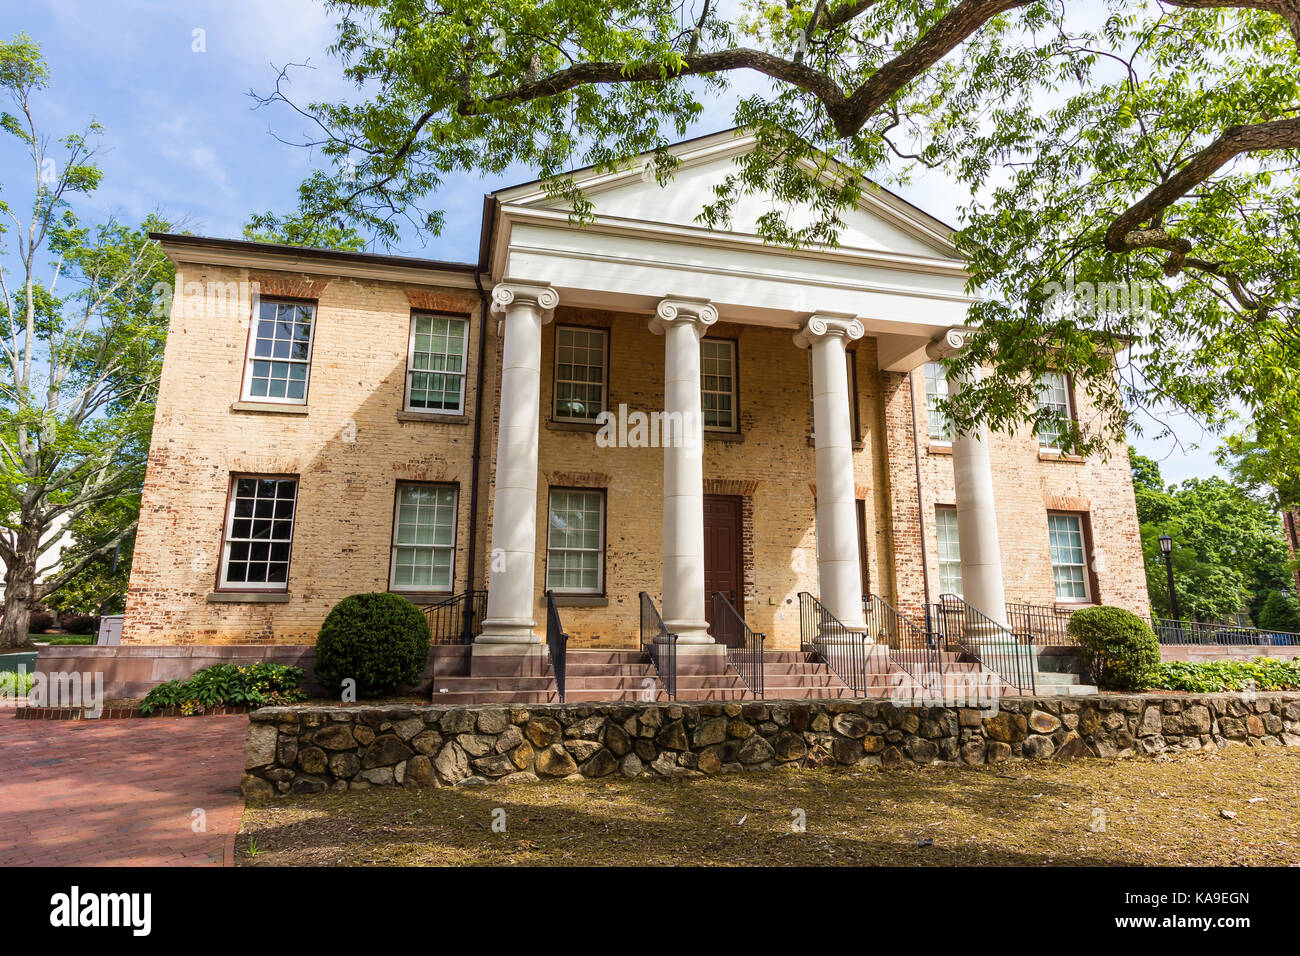 Gerrard Hall at the University of North Carolina at Chapel Hill in Chapel Hill, North Carolina.  Built in 1837. - Stock Image